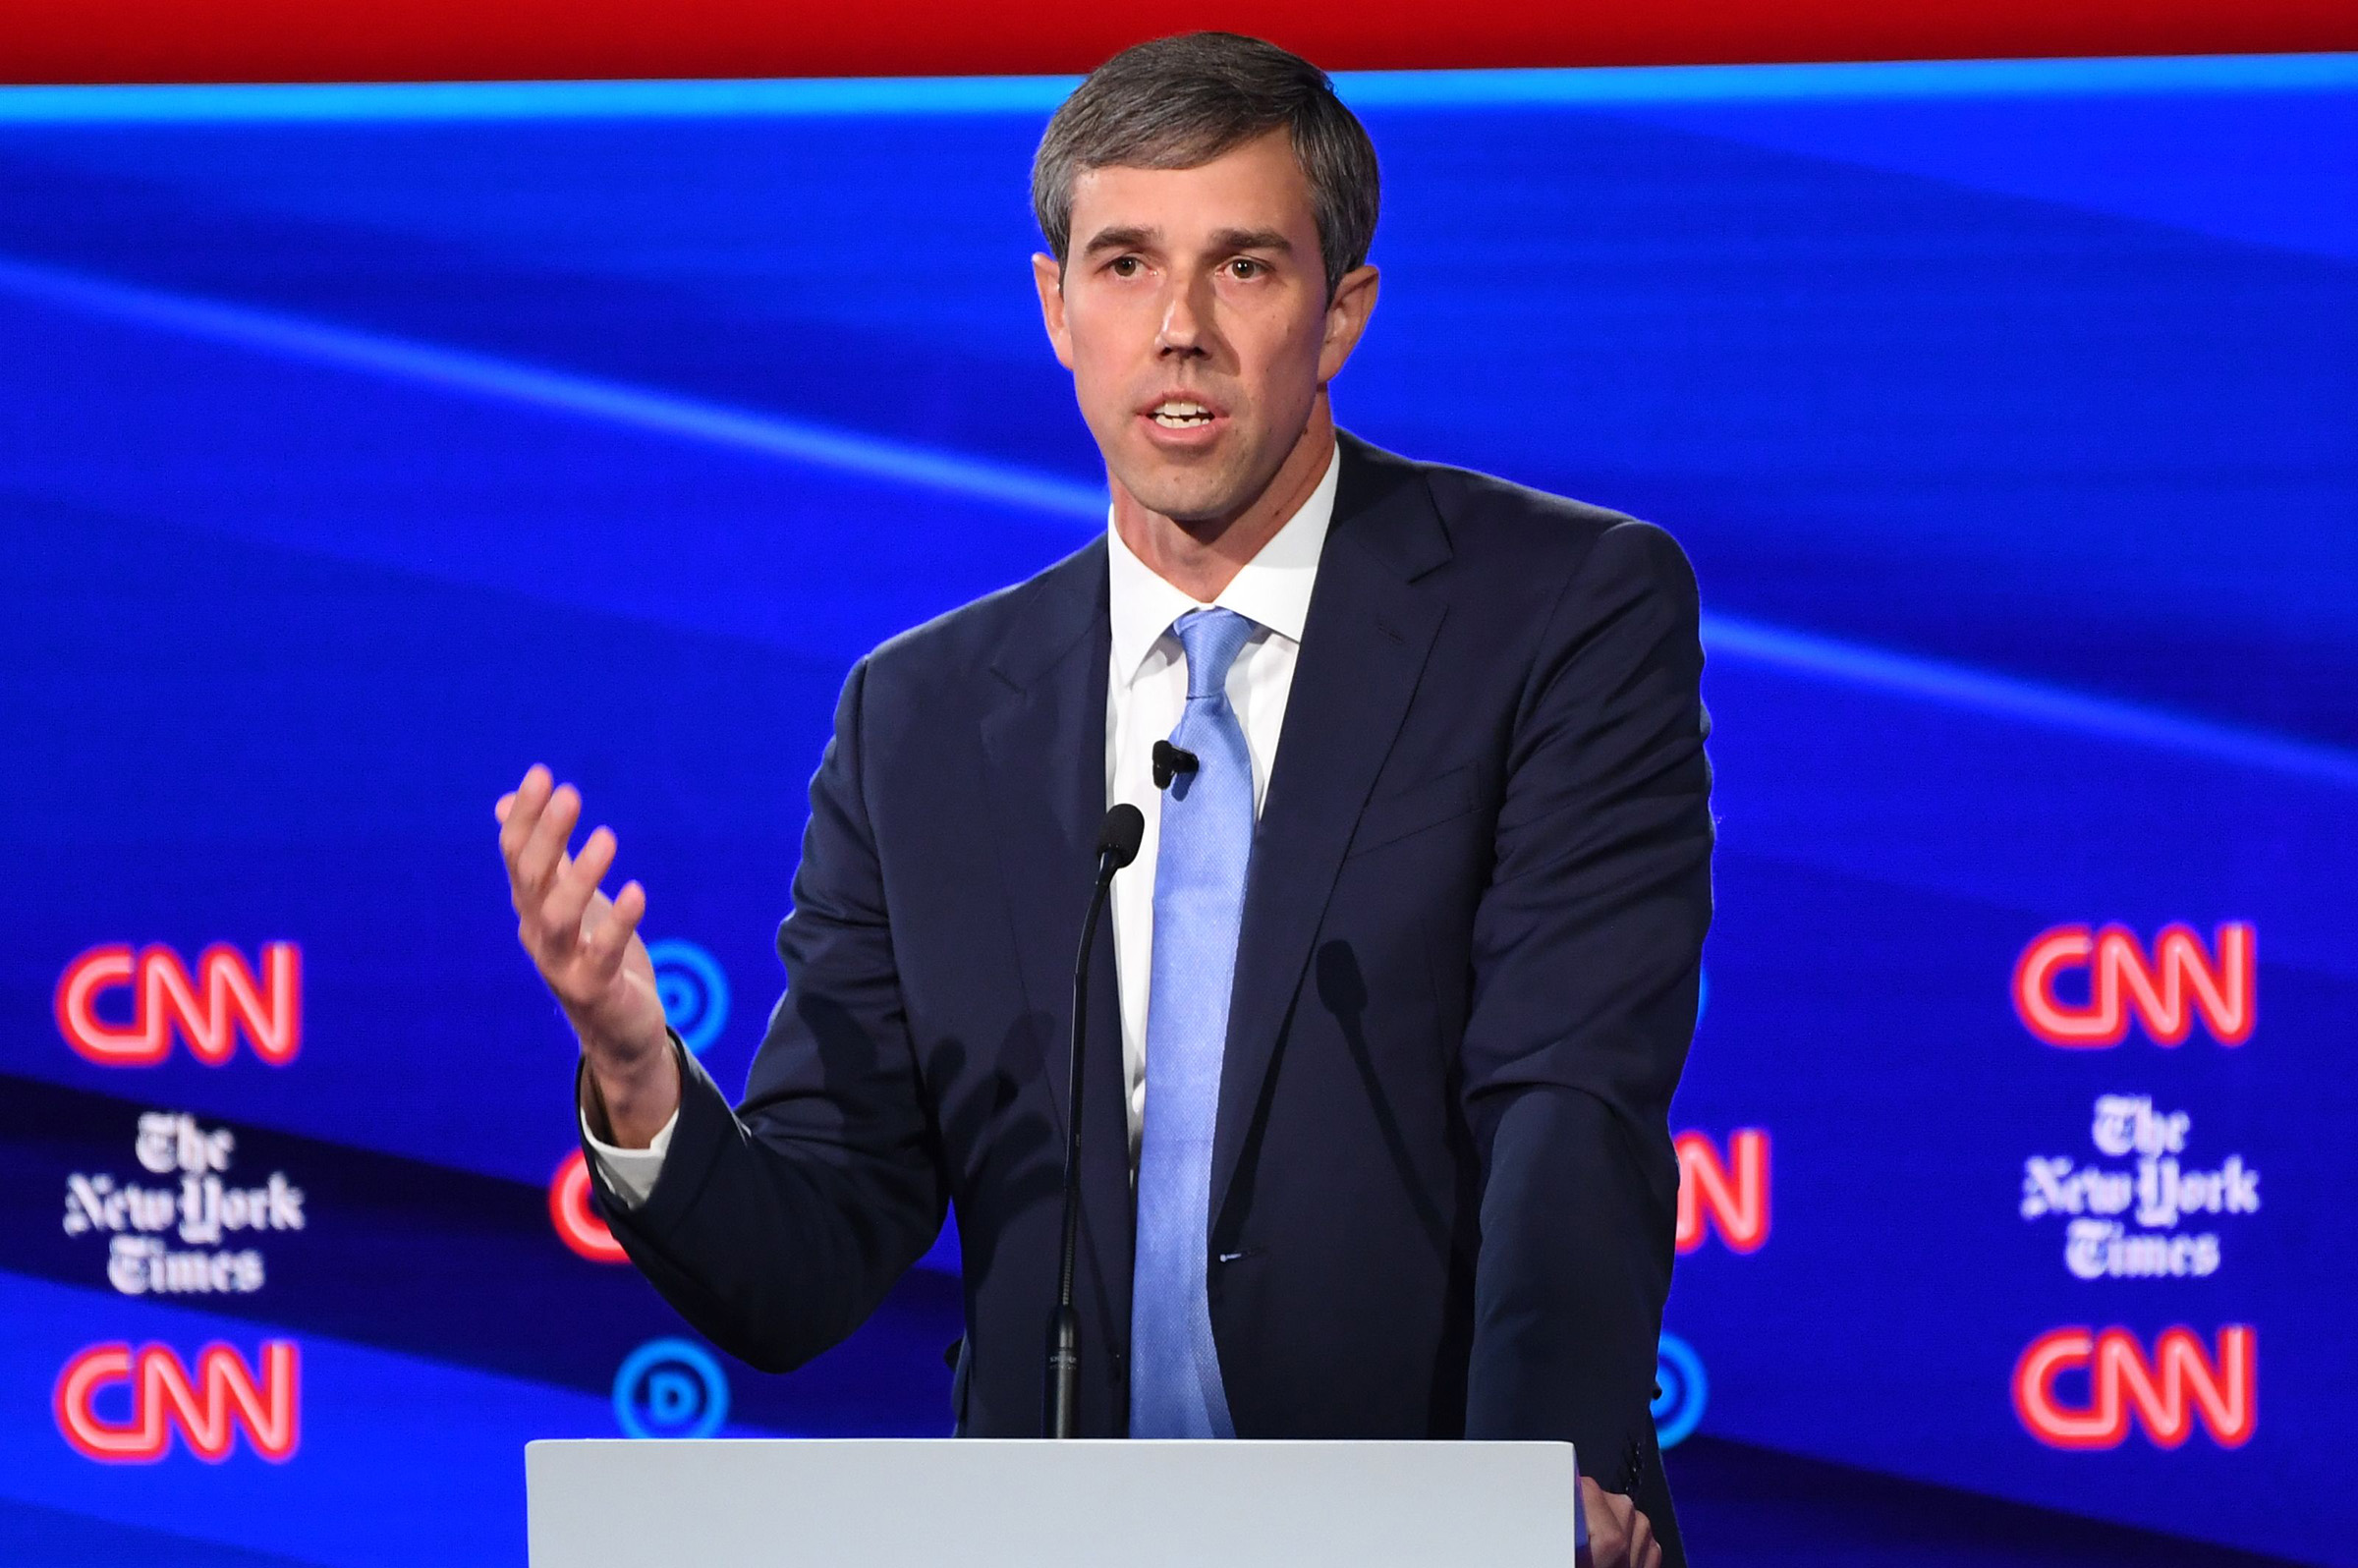 Democratic presidential hopeful former Texas representative Beto O'Rourke speaks during the fourth Democratic primary debate of the 2020 presidential campaign season in Westerville, Ohio on Oct. 15, 2019.